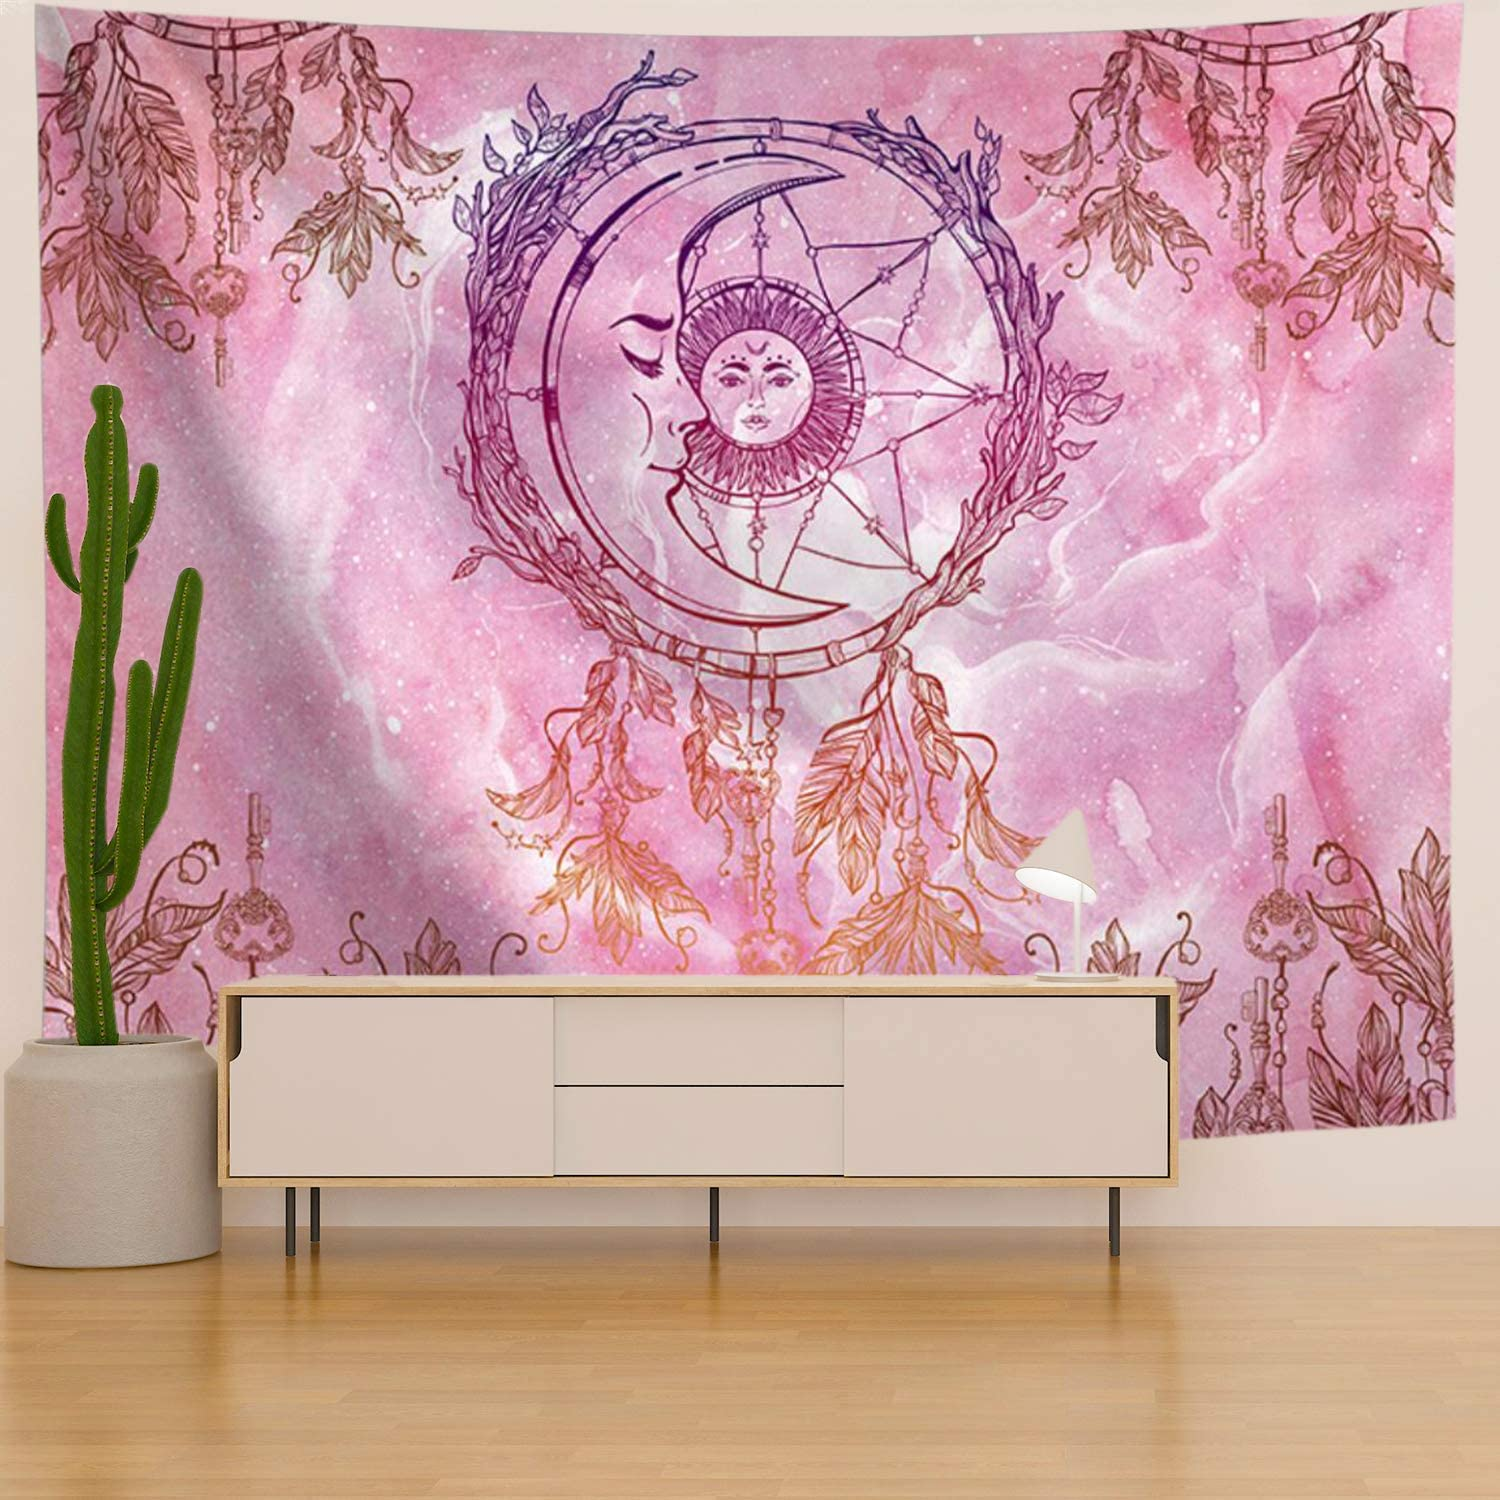 Maccyafst Pink Tapestry Moon Sun Tapestry Dreamcatcher Tapestry Bohemian Mandala Wall Tapestry Psychedelic Tapestry Wall Hanging For Bedroom H51 2 W59 1 Inches Everything Else Amazon Com